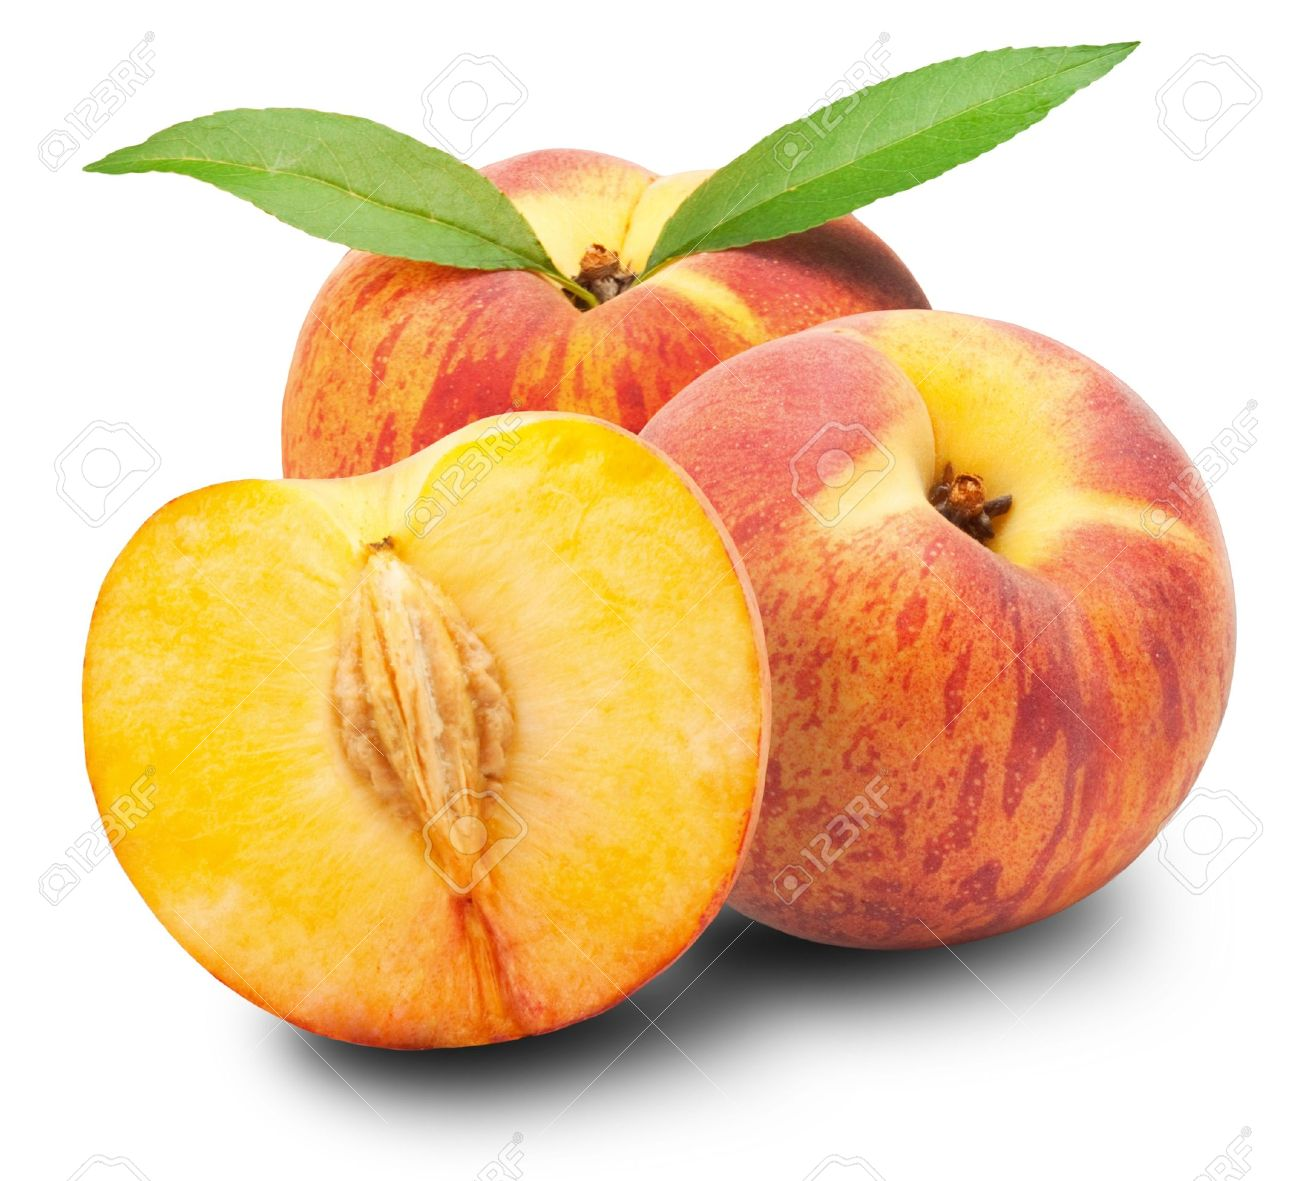 Ripe peach fruit with leaves and slises on white background - 16800703